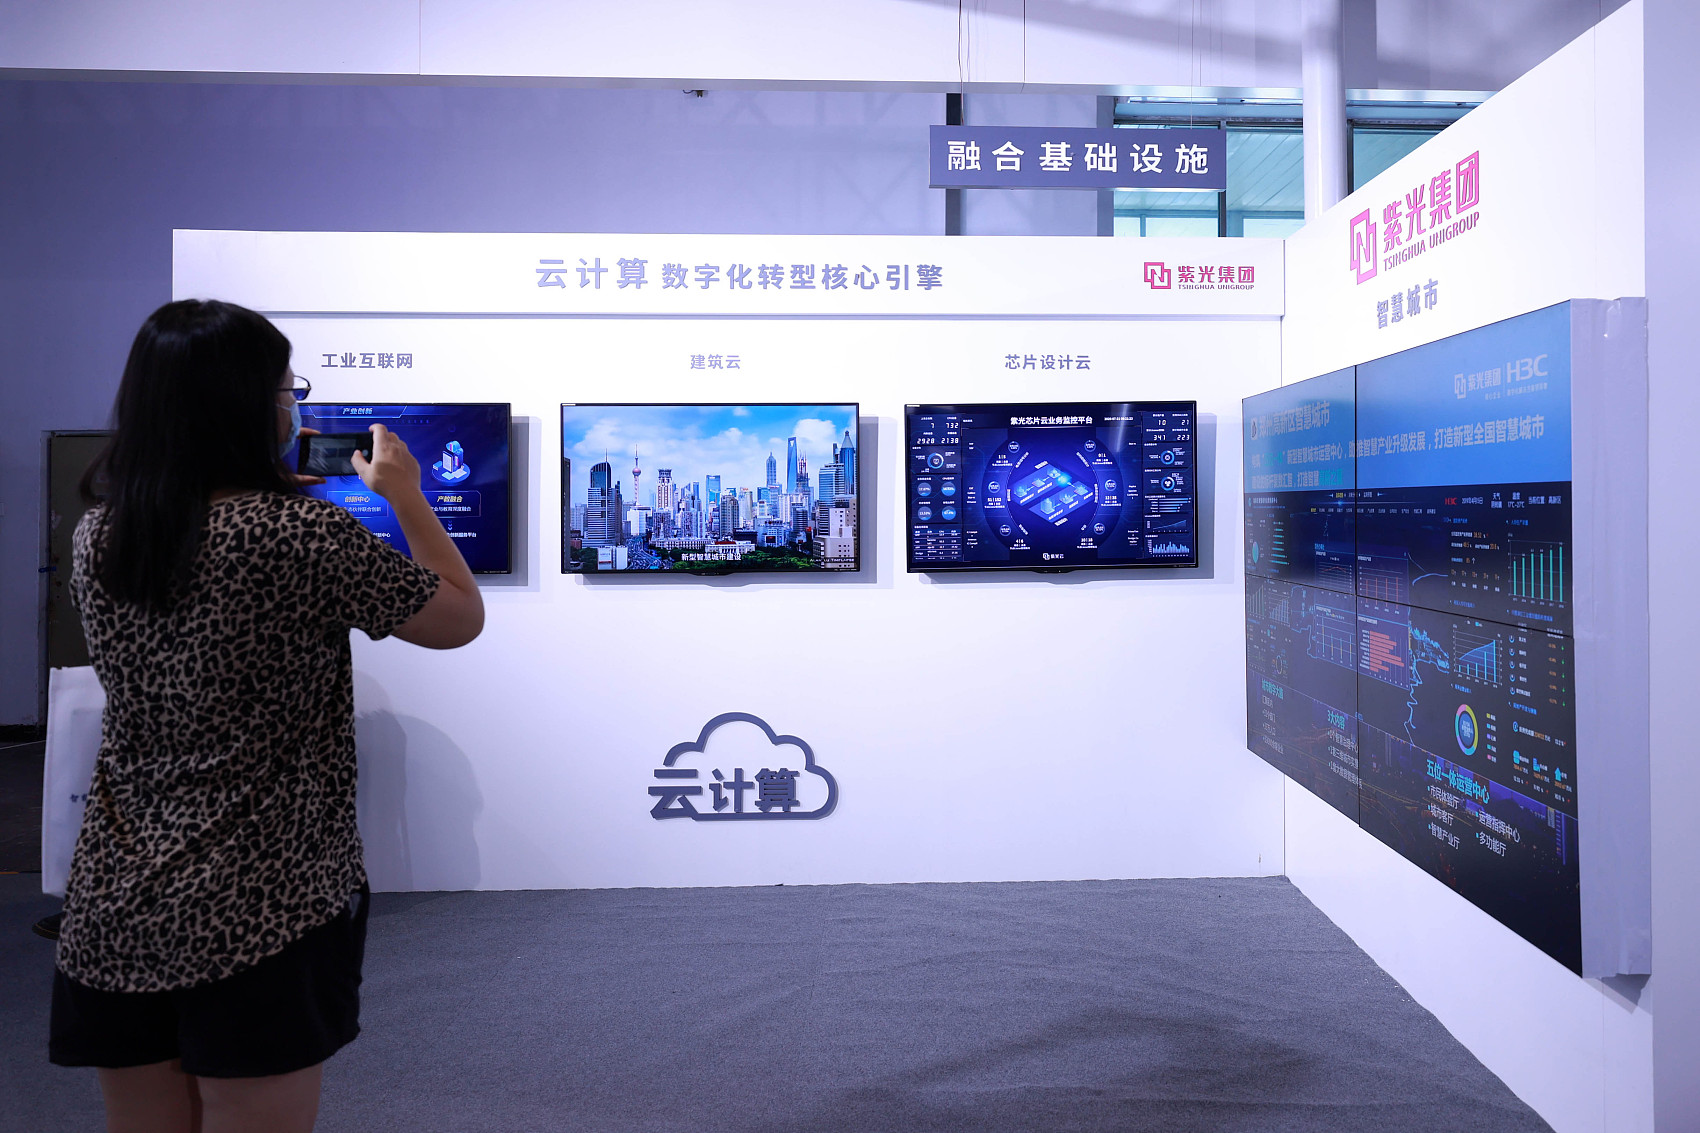 Chinese companies accelerate digital transformation post-COVID-19